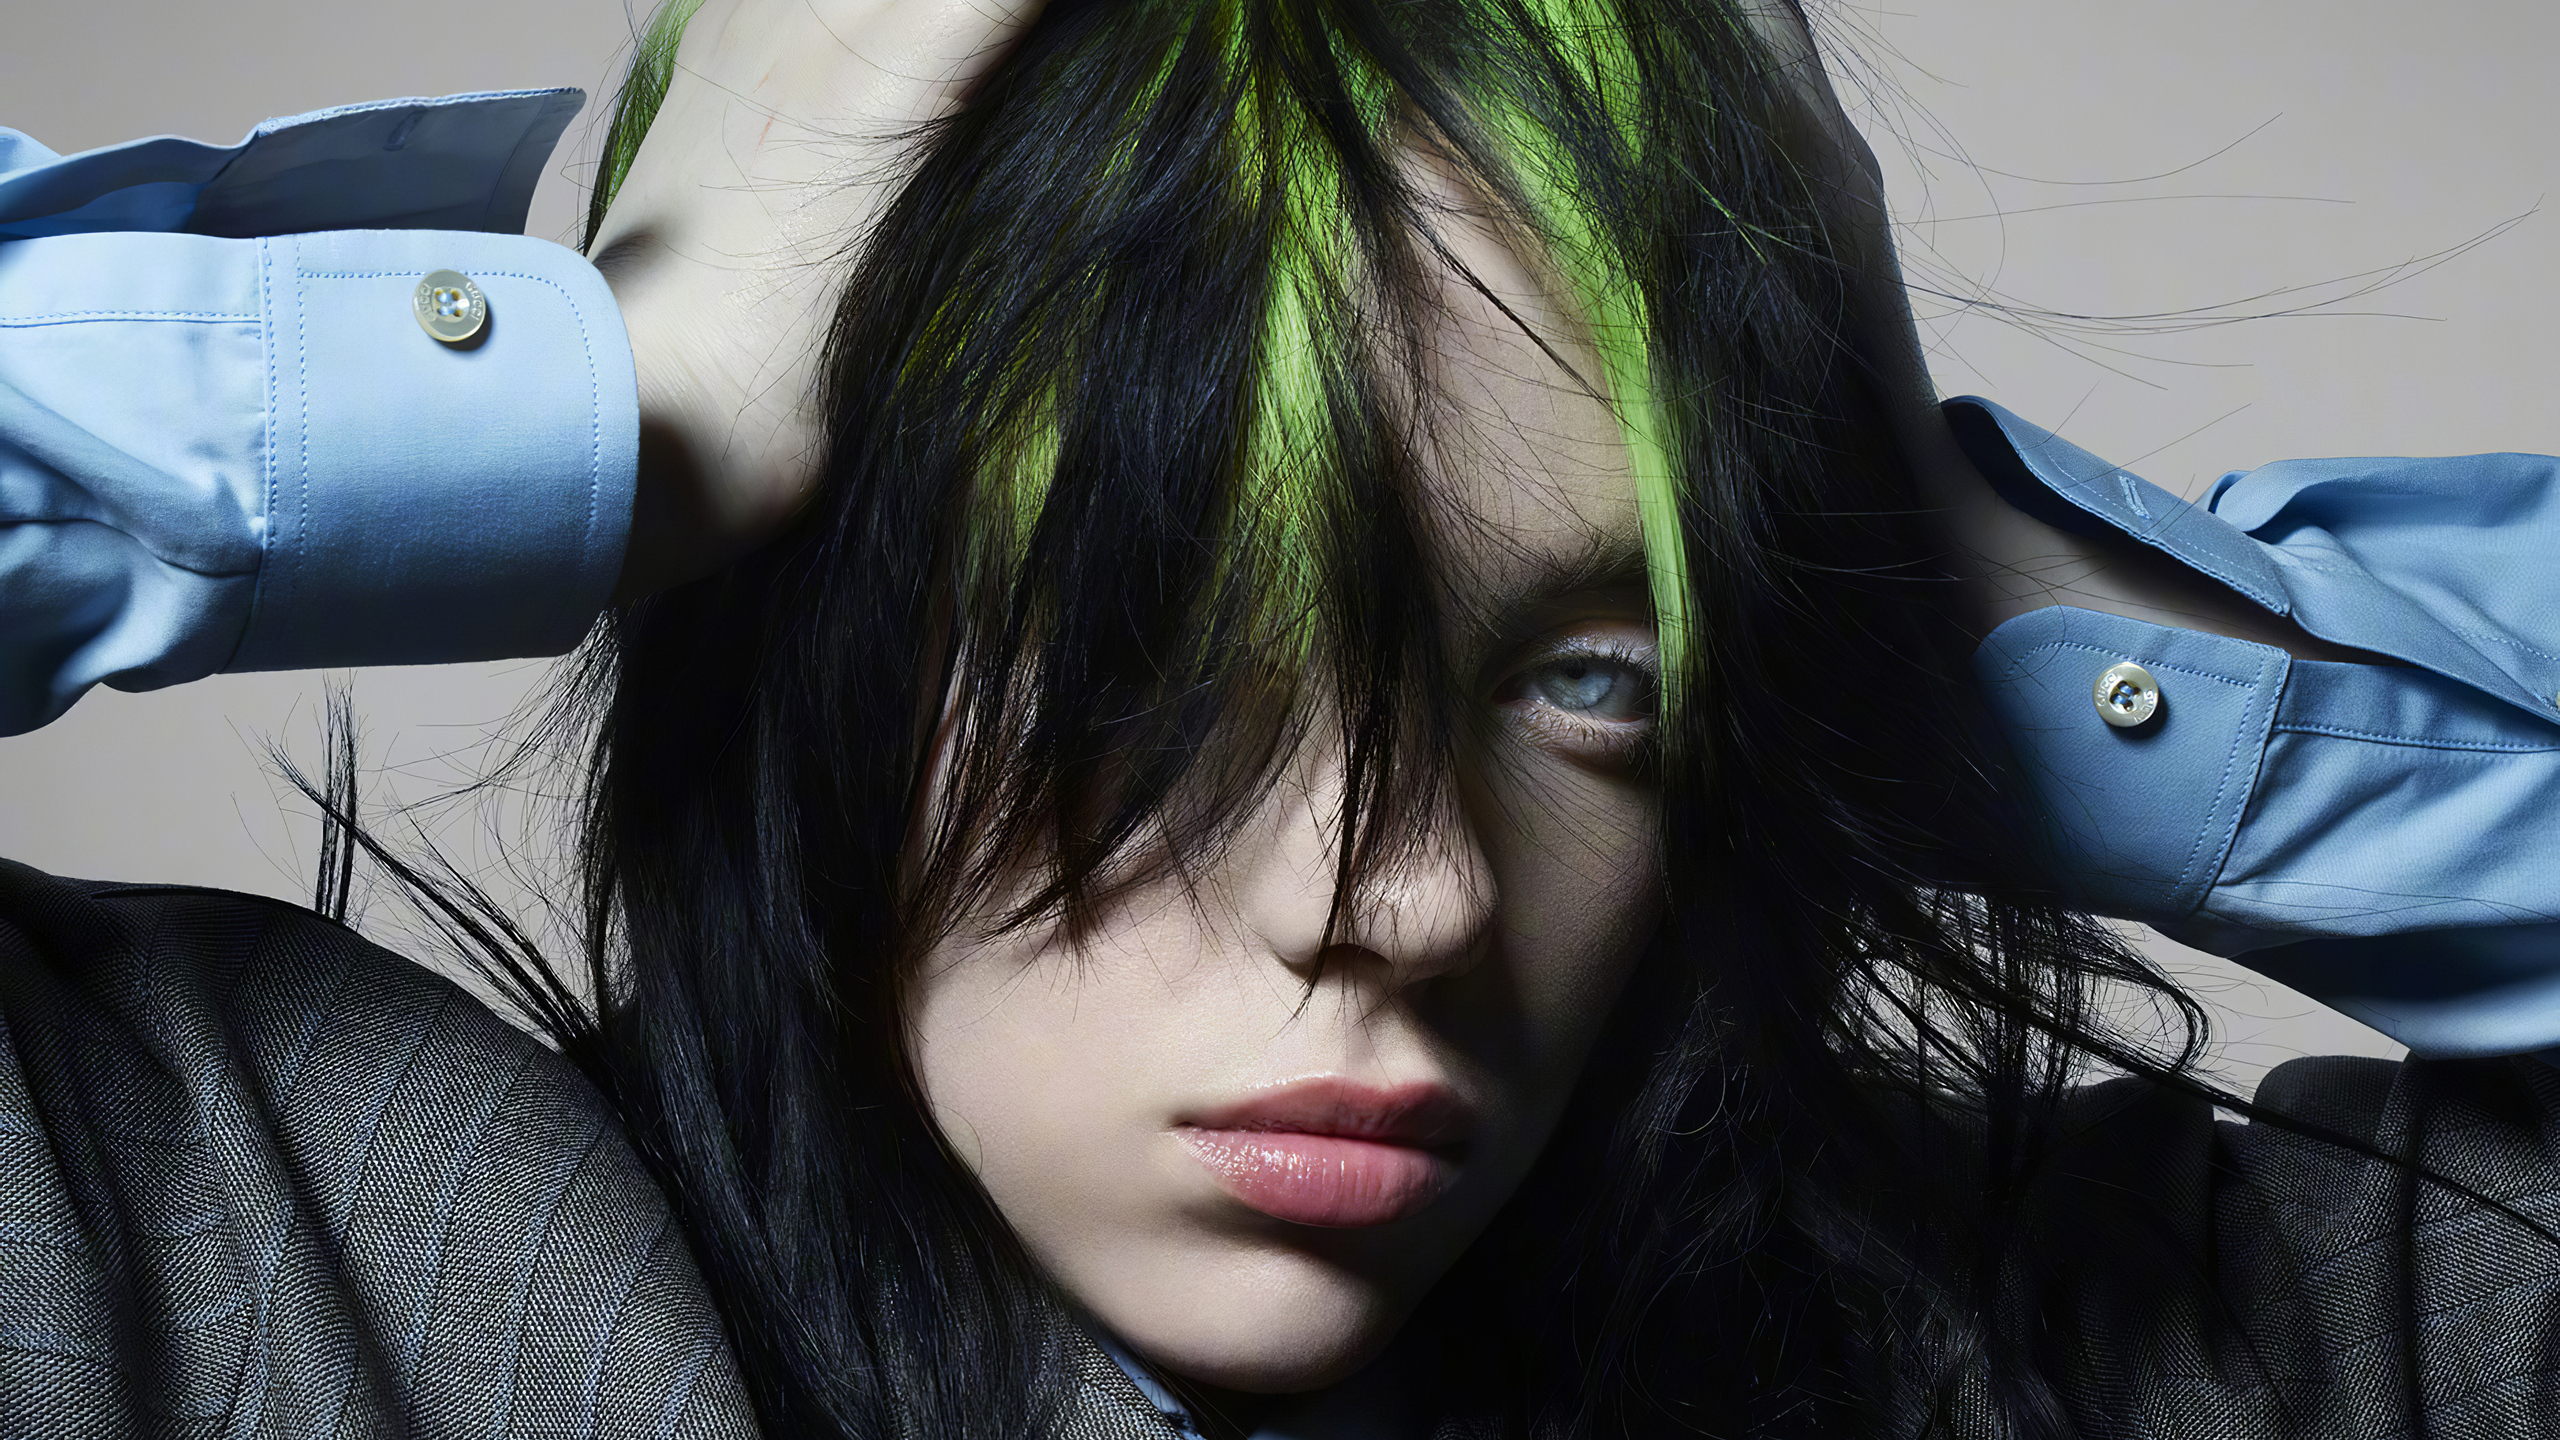 2560x1440 Billie Eilish Vogue China June 2020 1440P Resolution HD 4k  Wallpapers, Images, Backgrounds, Photos and Pictures